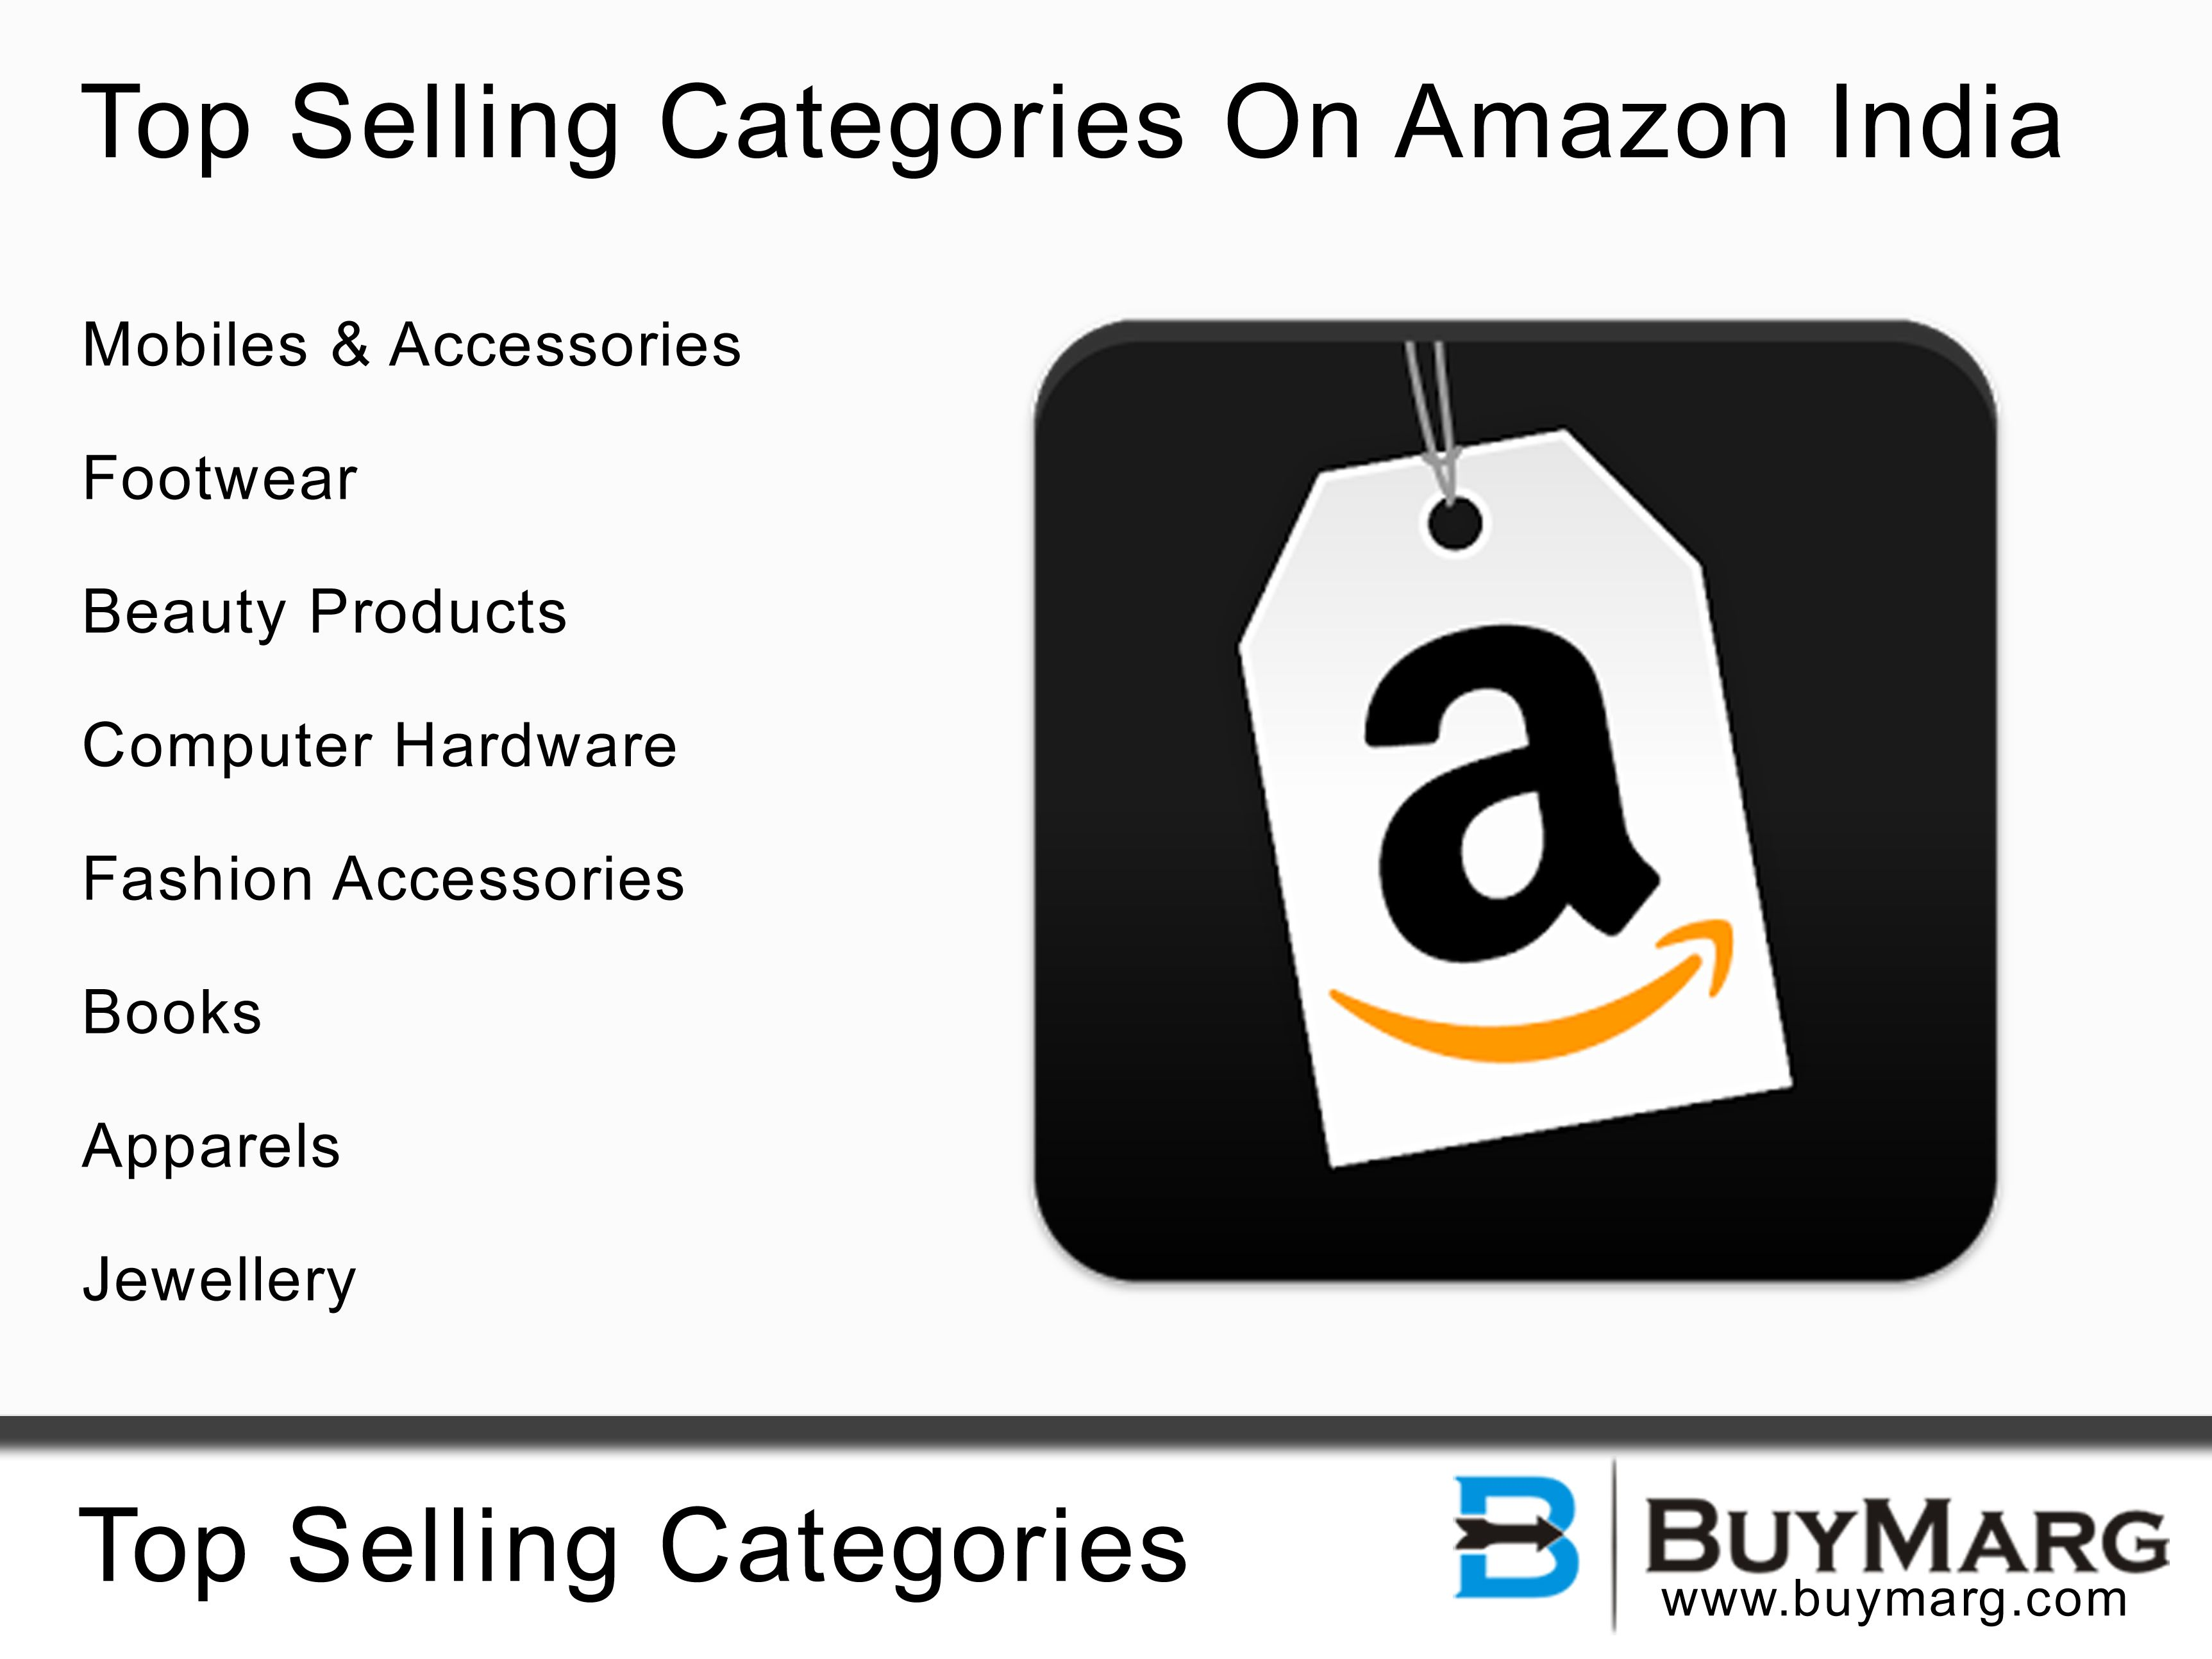 How Do I Identify The Top Selling Products By Category On Amazon